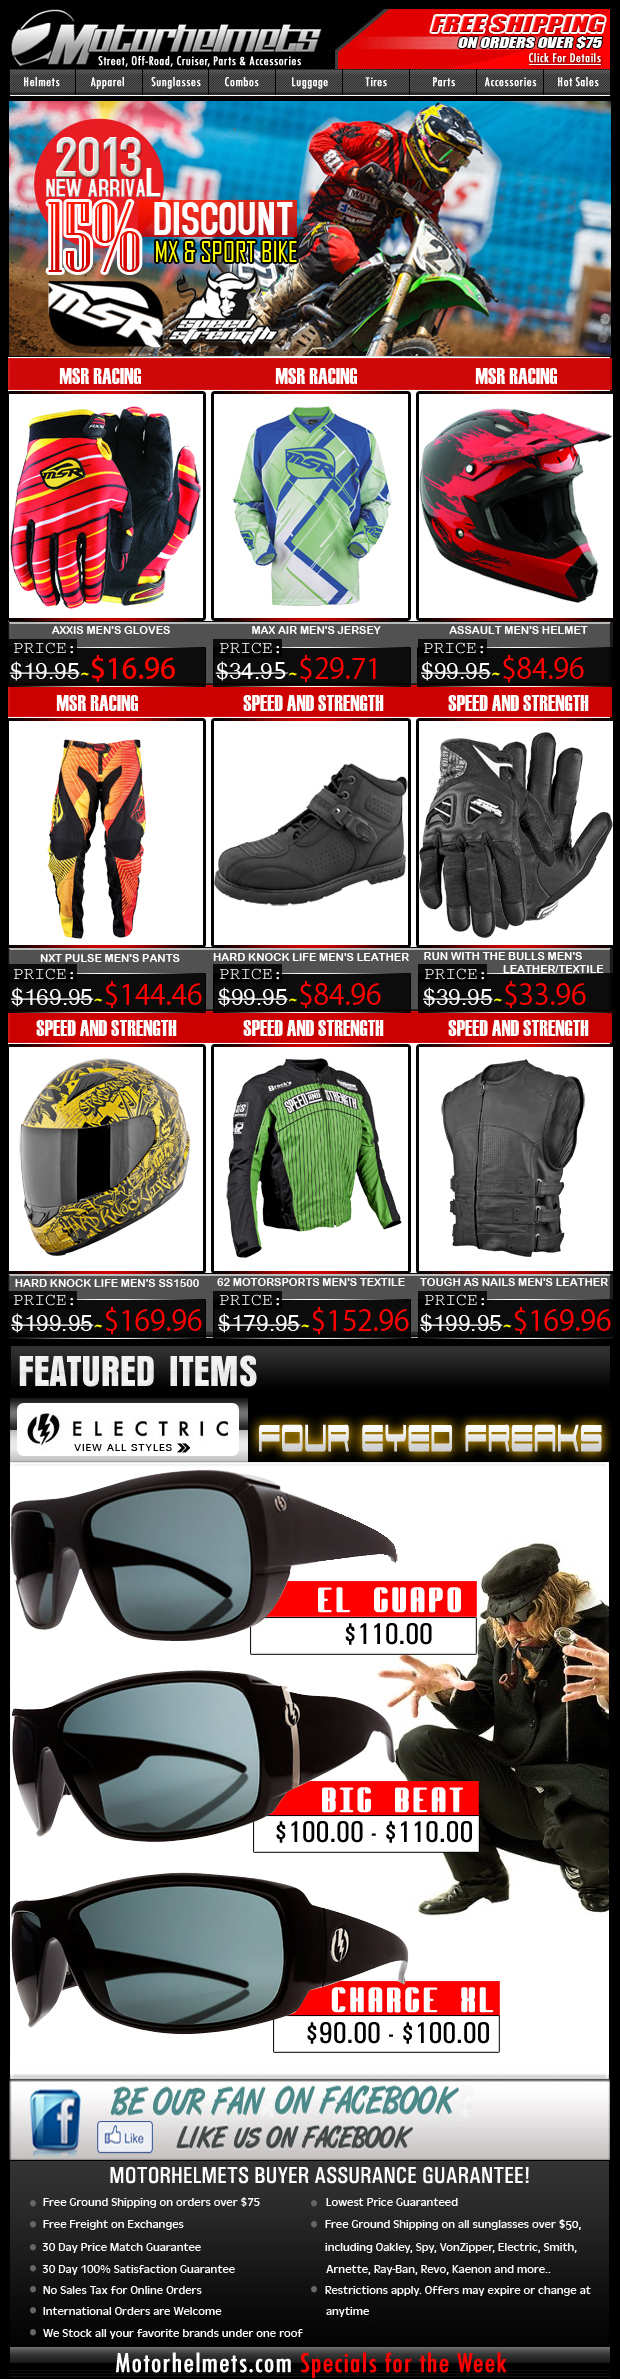 Holiday Specials...Up to 15% off on MSR and Speed & Strength Gear!